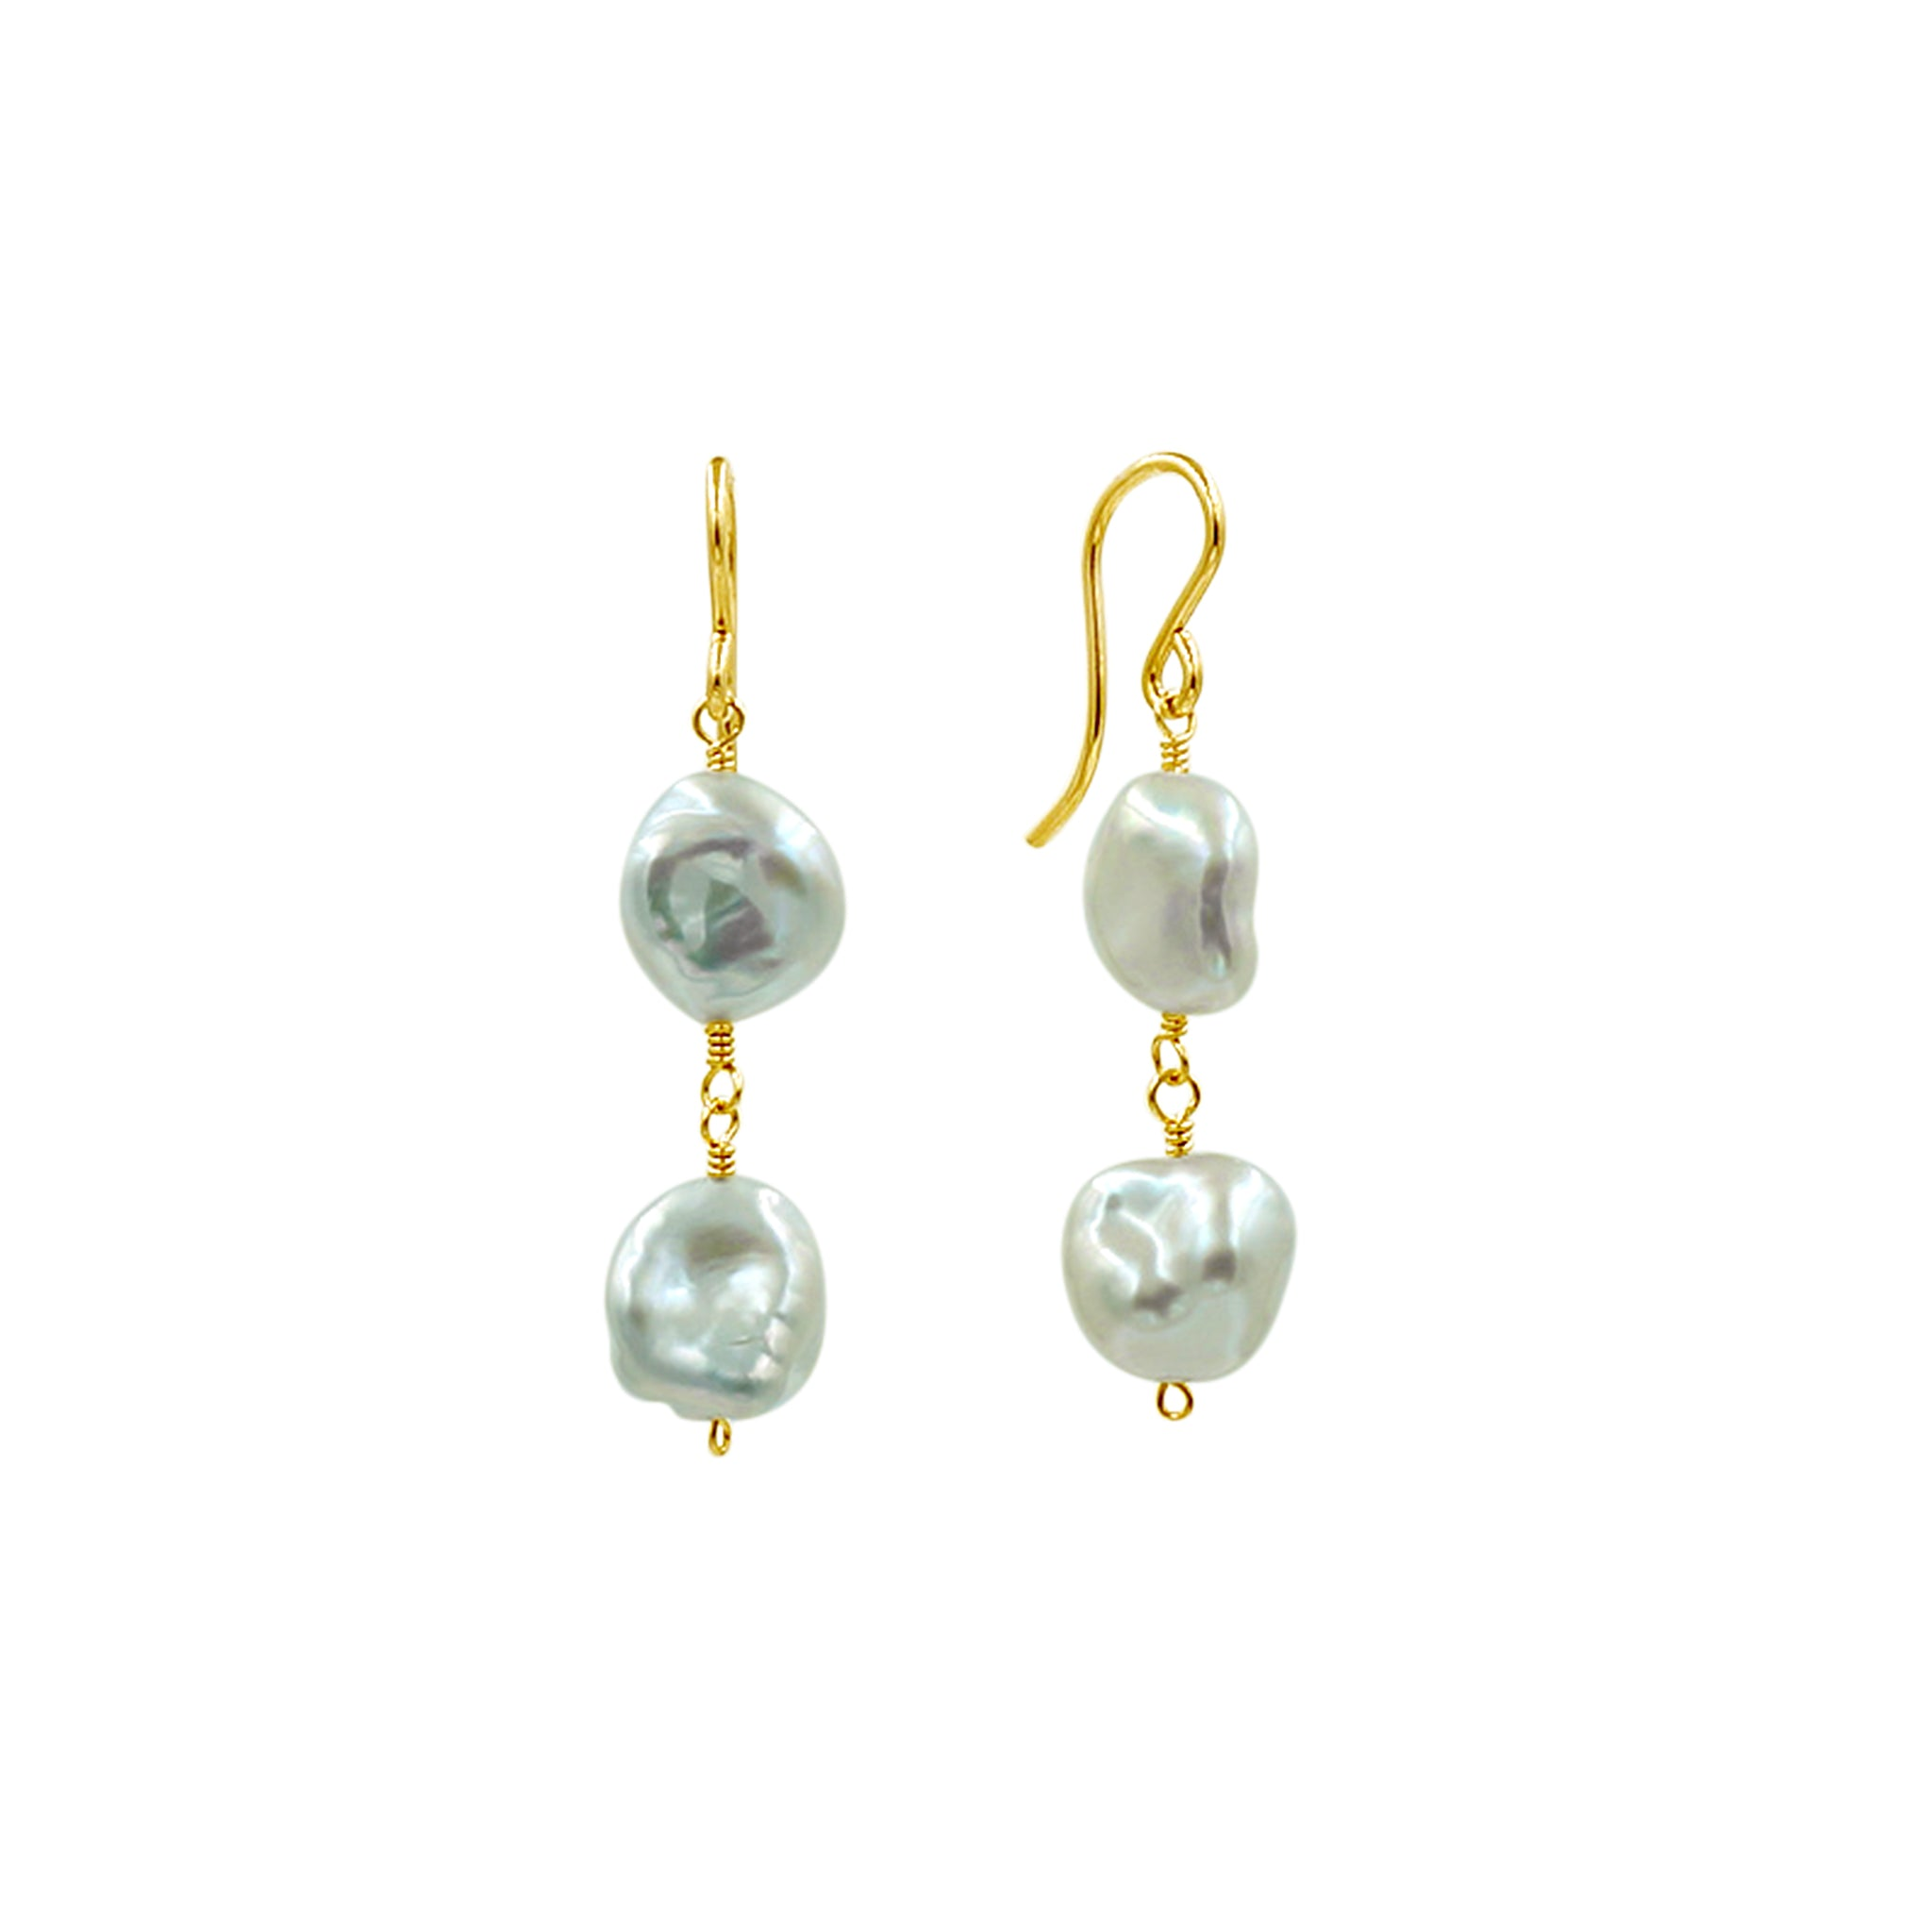 Baroque Gorgeous Pearl Earrings - Sati Gems Hawaii Healing Crystal Gemstone Jewelry